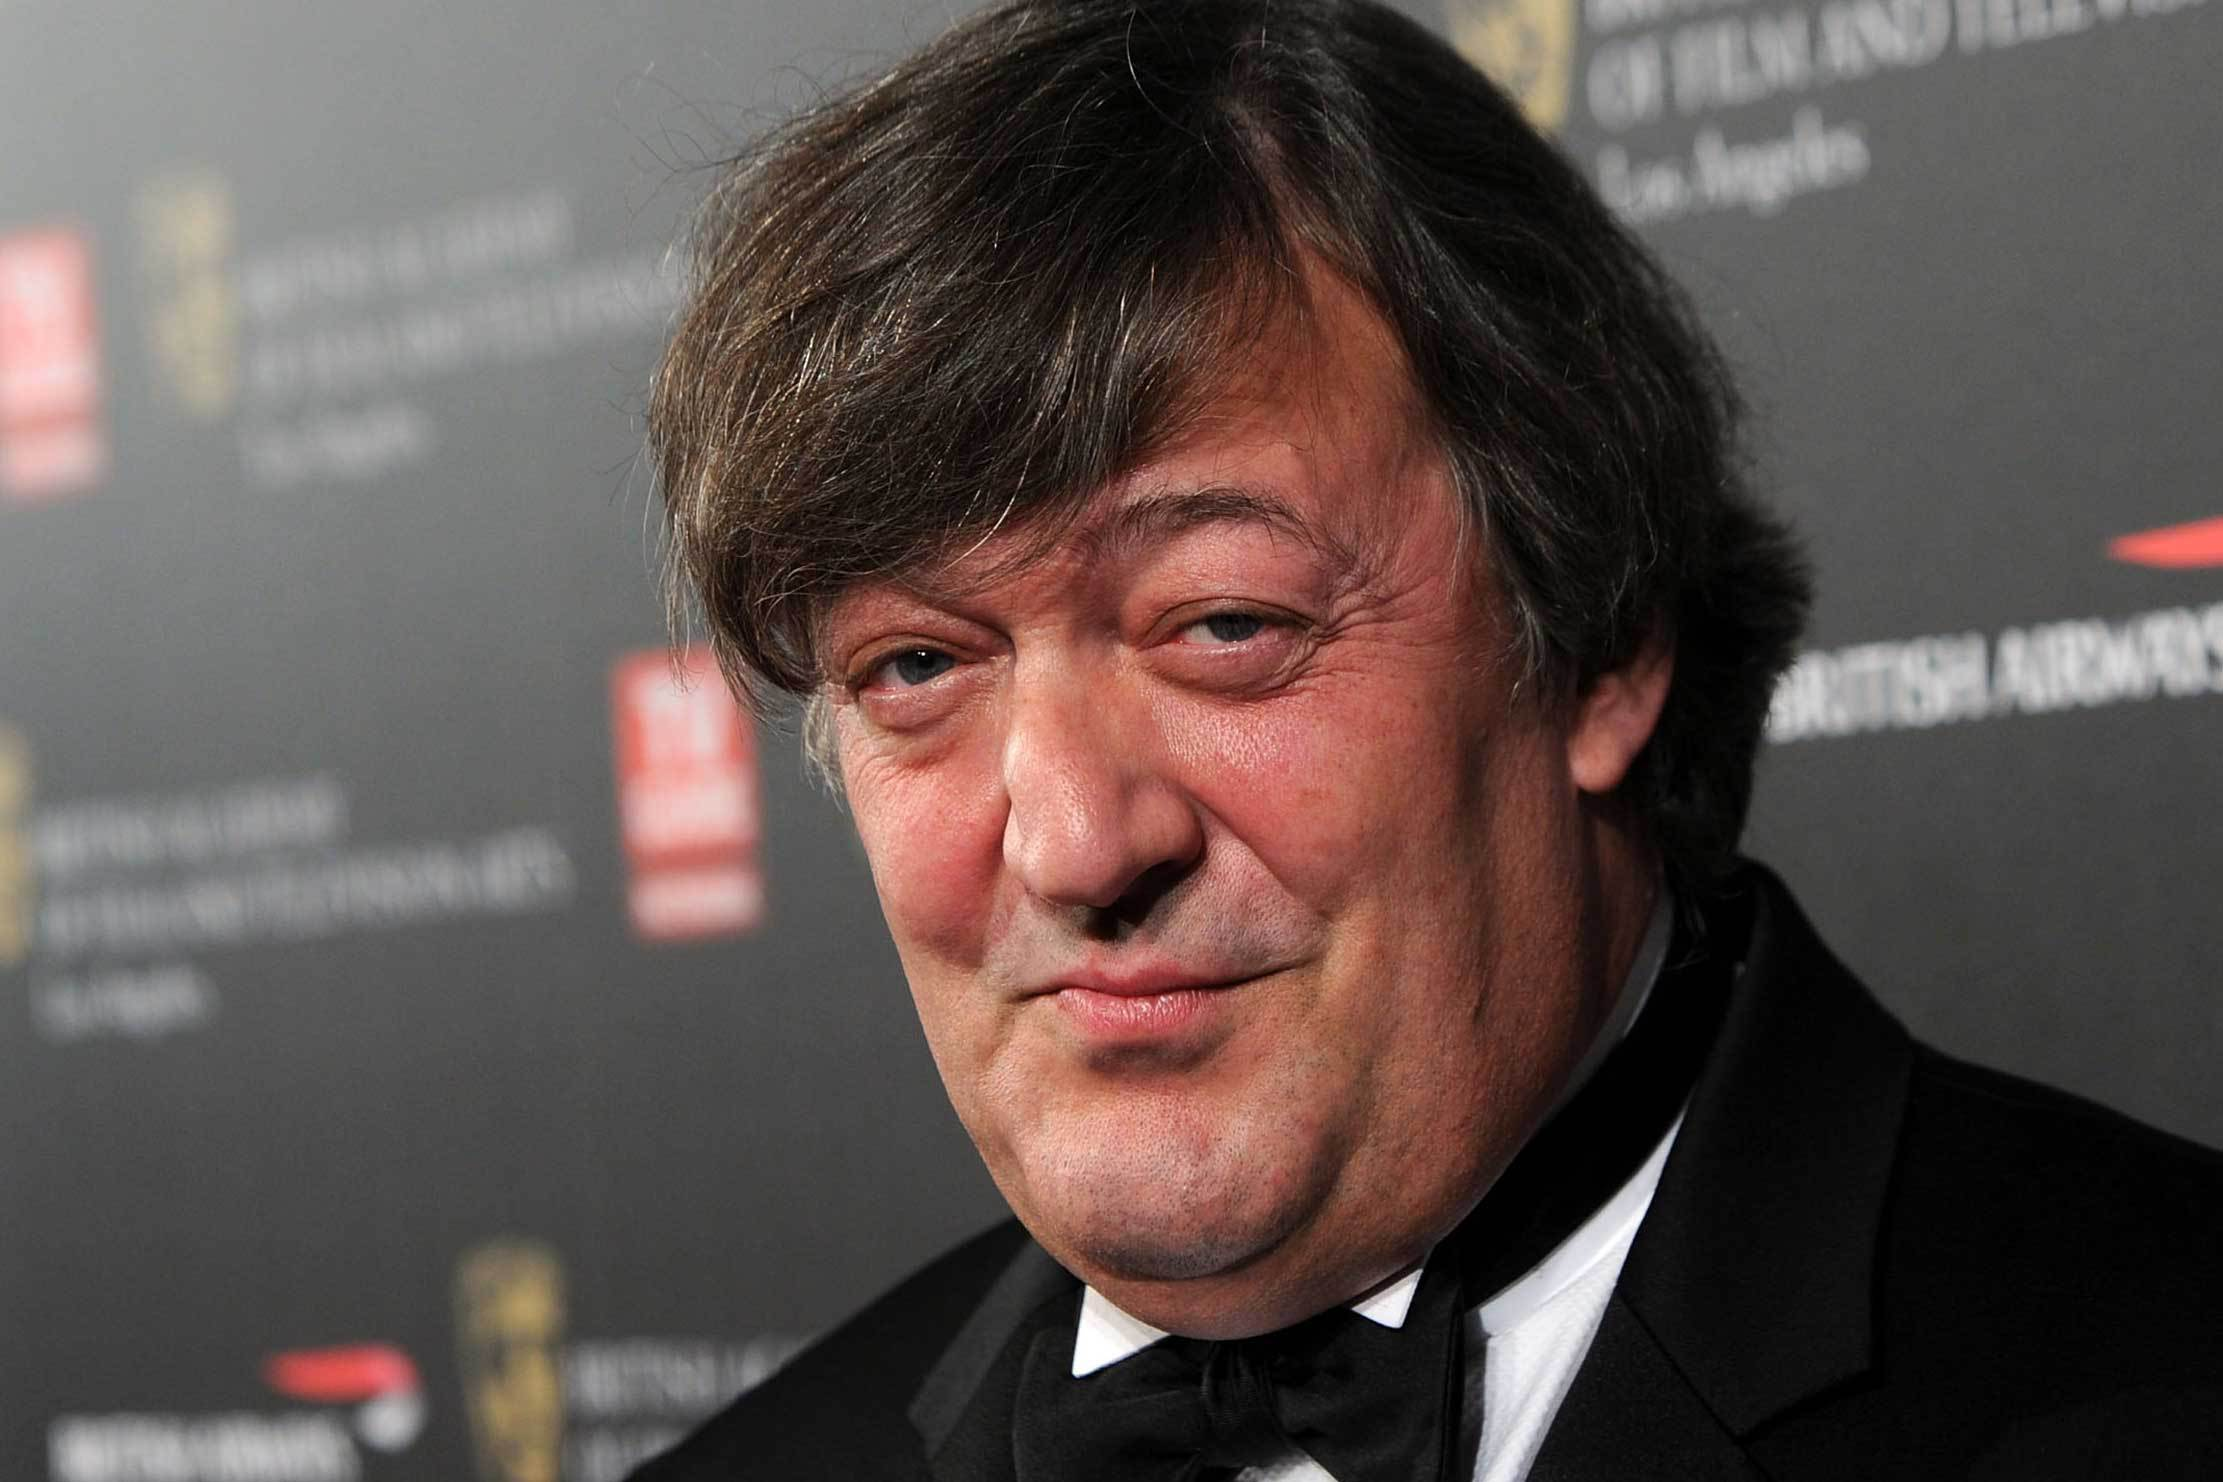 Stephen Fry Images